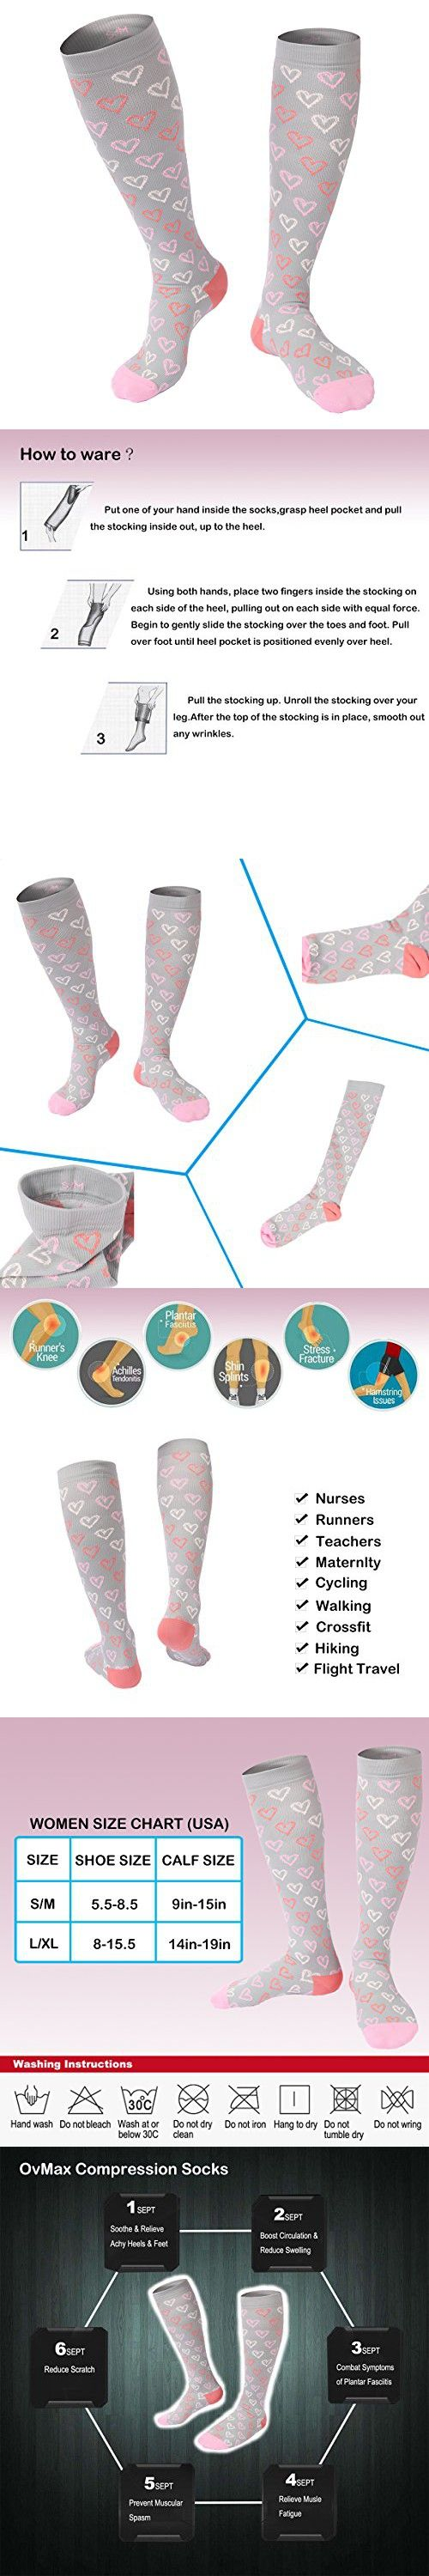 Compression Socks for Women Best For Sports,Flight Travel,Running,Nursing,Pregnancy,Promote Blood Circulation,Relief Heel,Ankle Pain-1 Pair (L/XL, Grey)